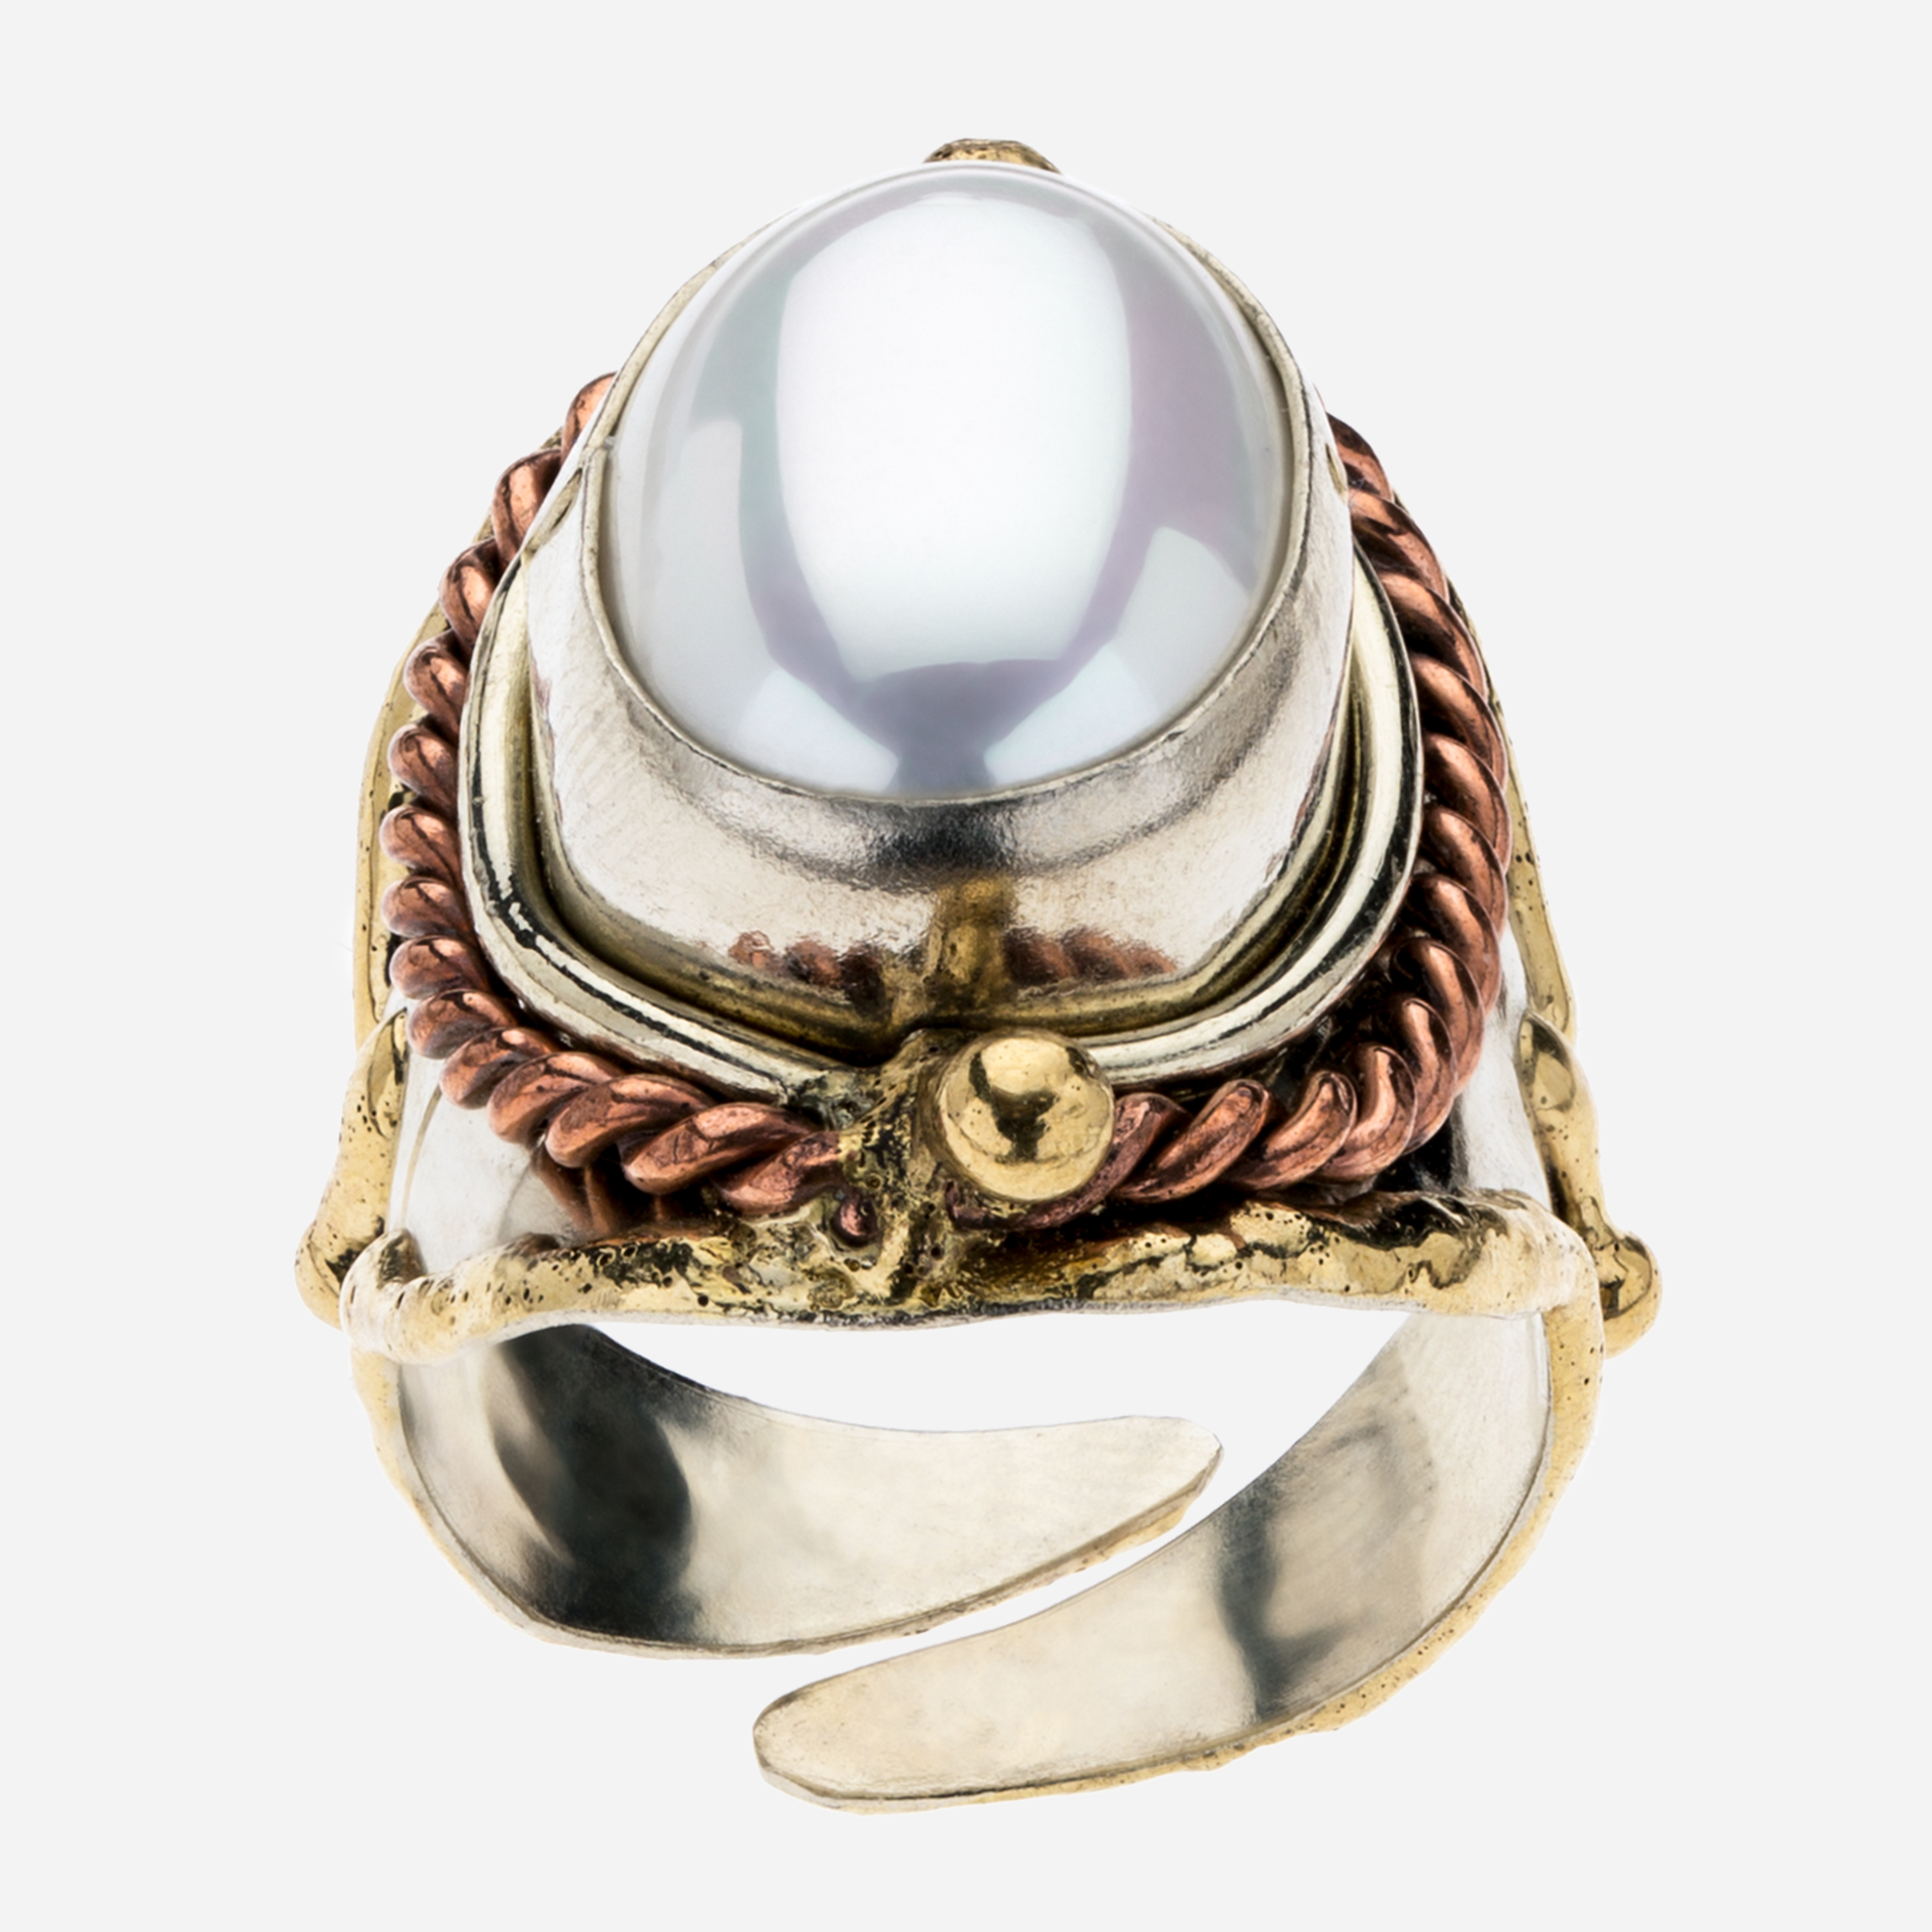 Tara Mesa Freshwater Pearl Ring Crafted in German Silver—with an accent of Brass and Copper